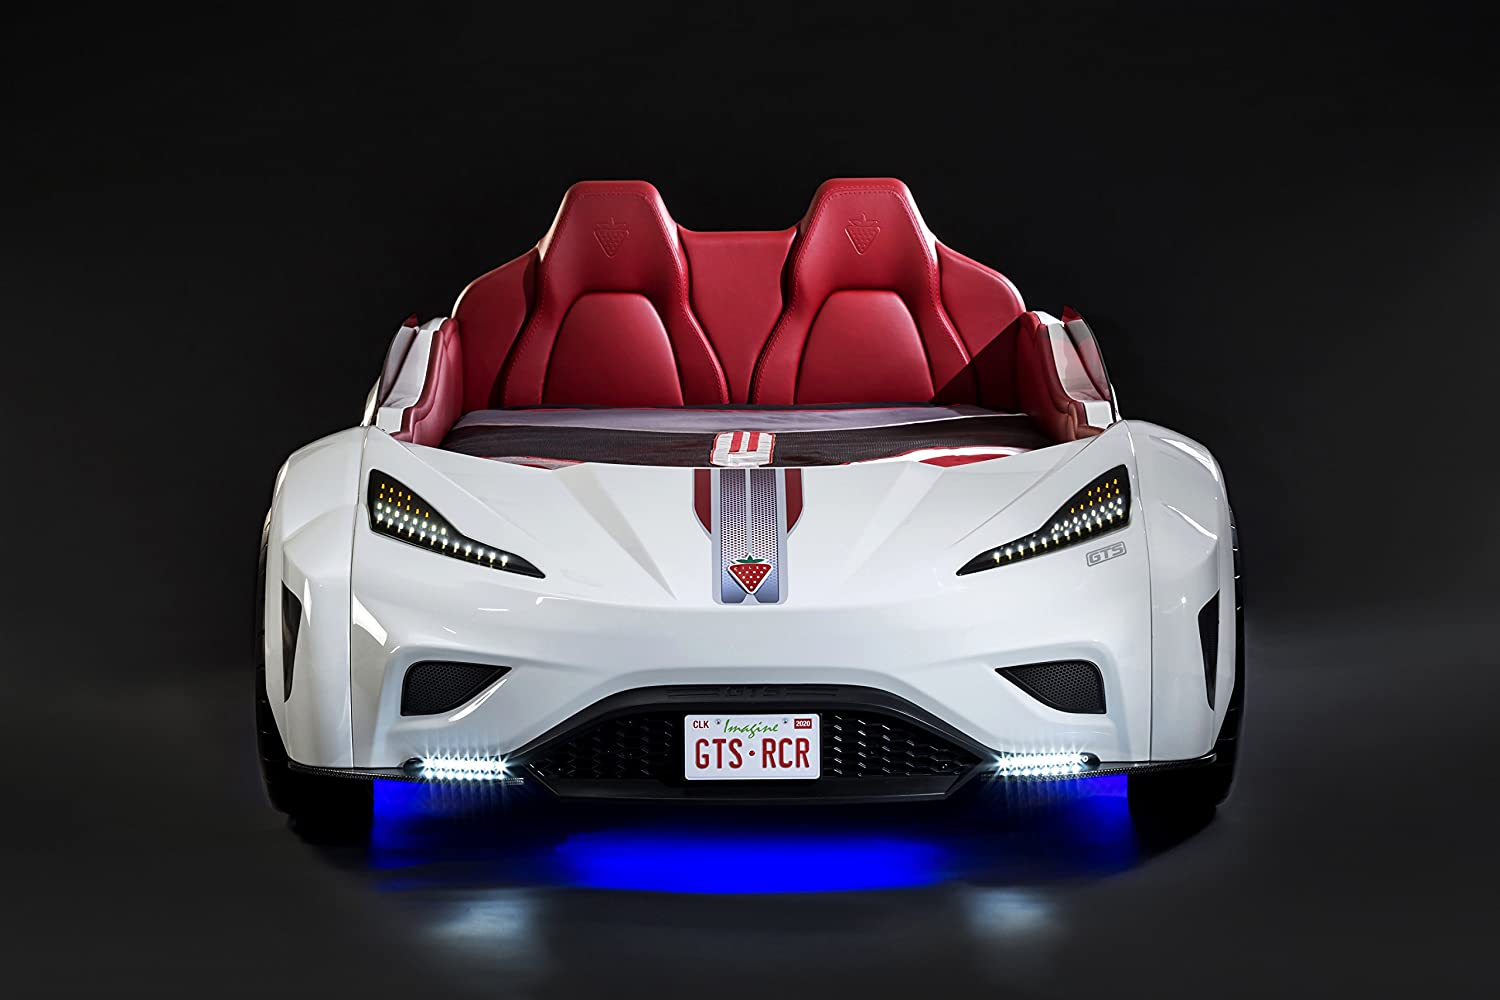 LED Headlights w// Remote Control Engine Sound Window Railings Cilek GTS Race Car Bed Vanity License Plate Interior Padding Upholstered Headboard Twin Black Ages 2 to 12